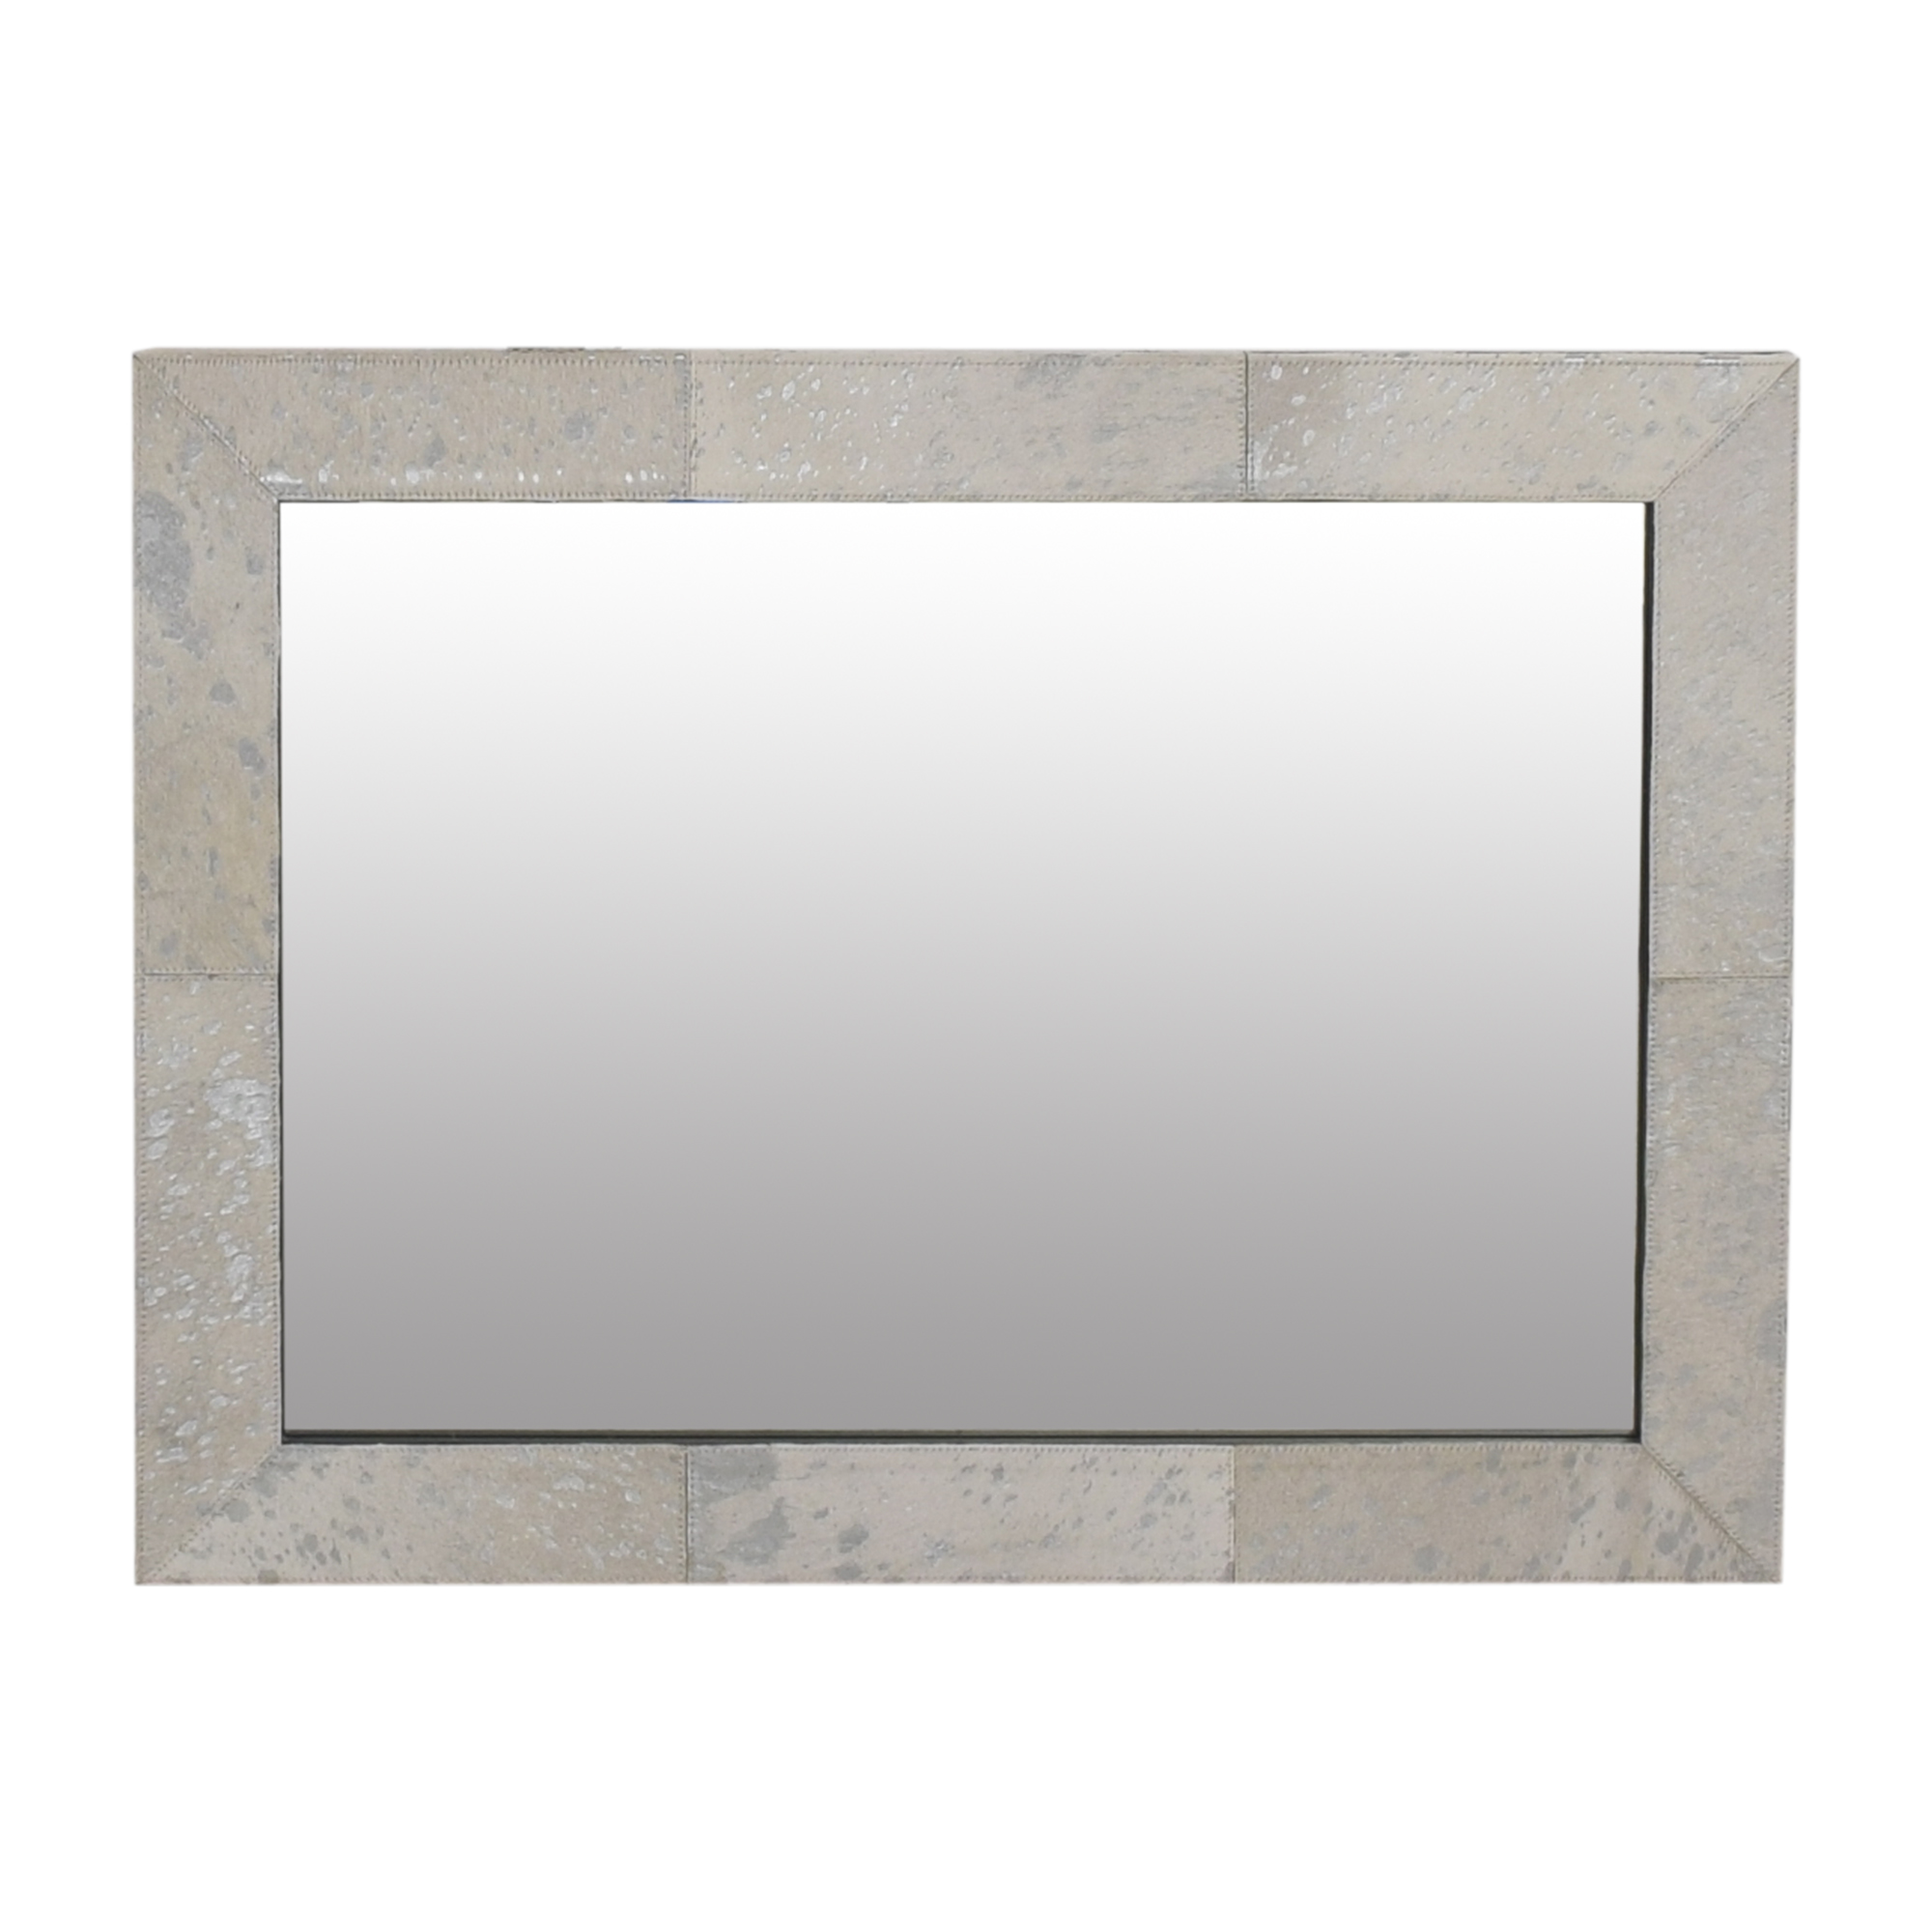 Restoration Hardware Restoration Hardware Metallic Patterned Mirror white and gray